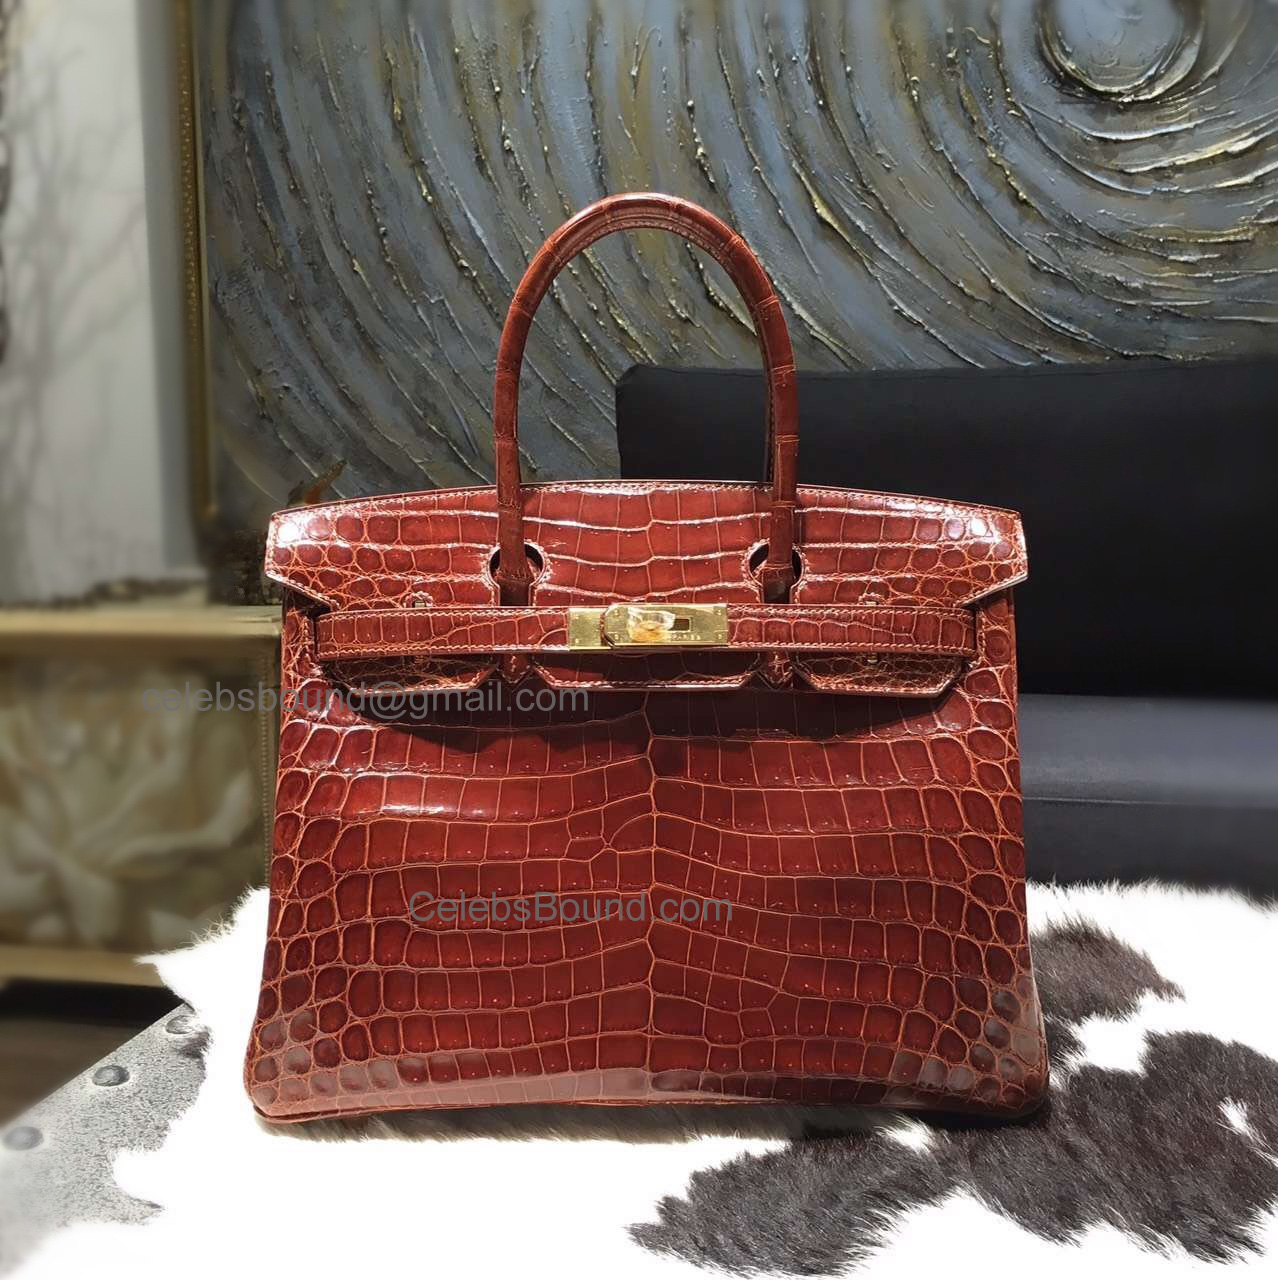 a8bd8c7926be Hand Stitched Hermes Birkin 30 Bag in ck31 Miel Shining Niloticus Croc GHW